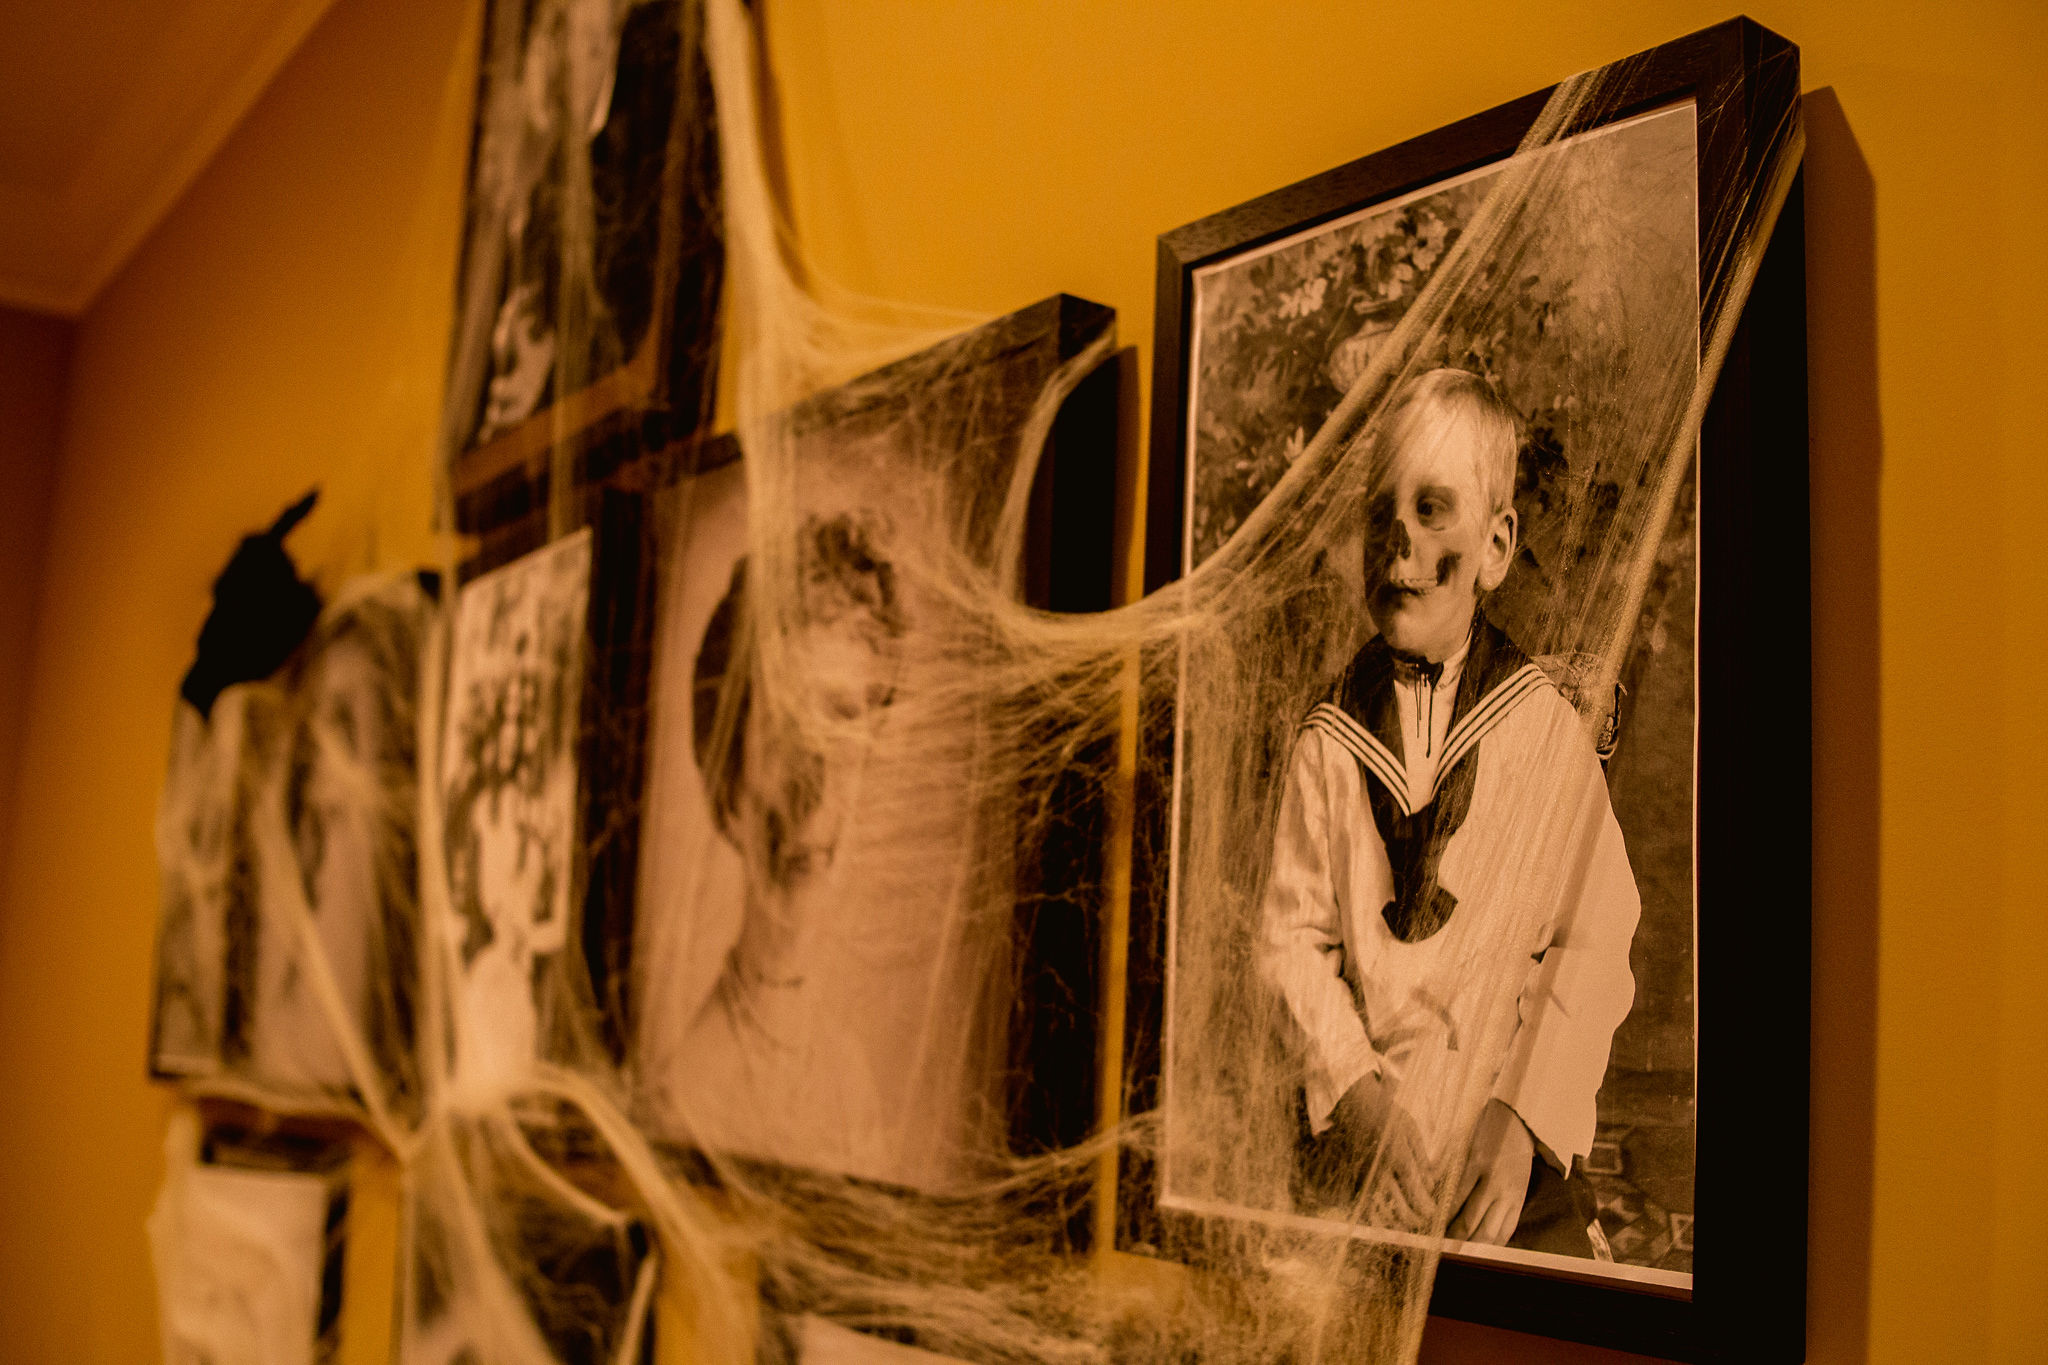 close up image of creepy Halloween party portrait wall with spider webs